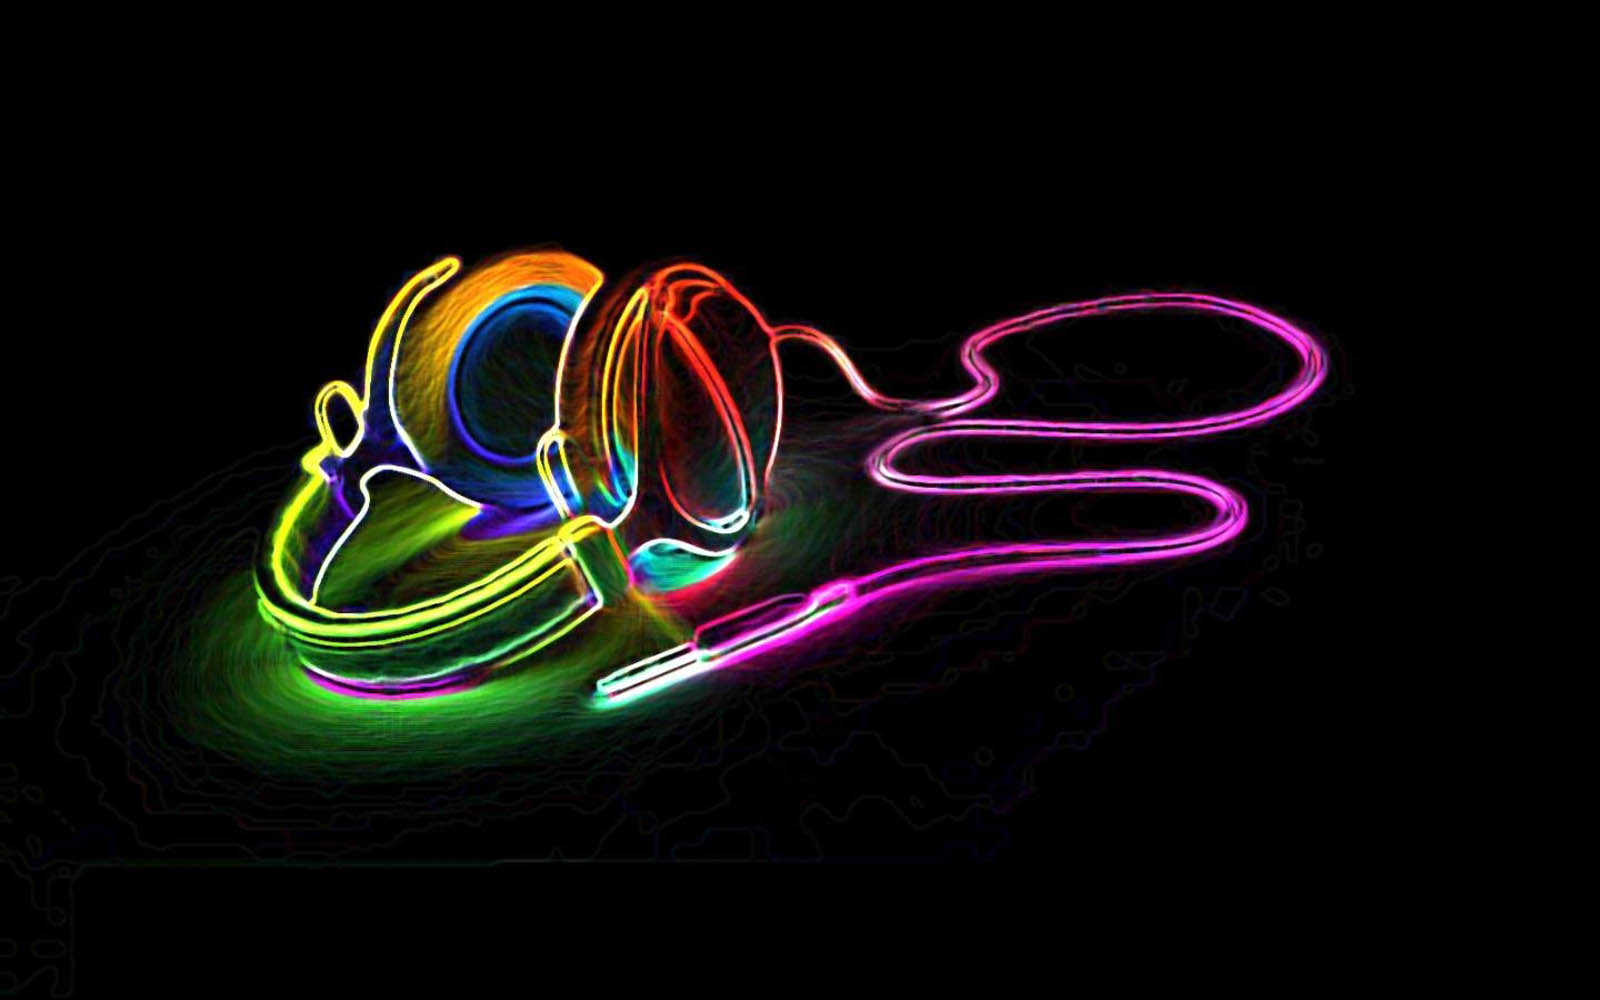 Neon Art Wallpapers Neon Art Desktop Wallpapers Neon Art Desktop 1600x1000